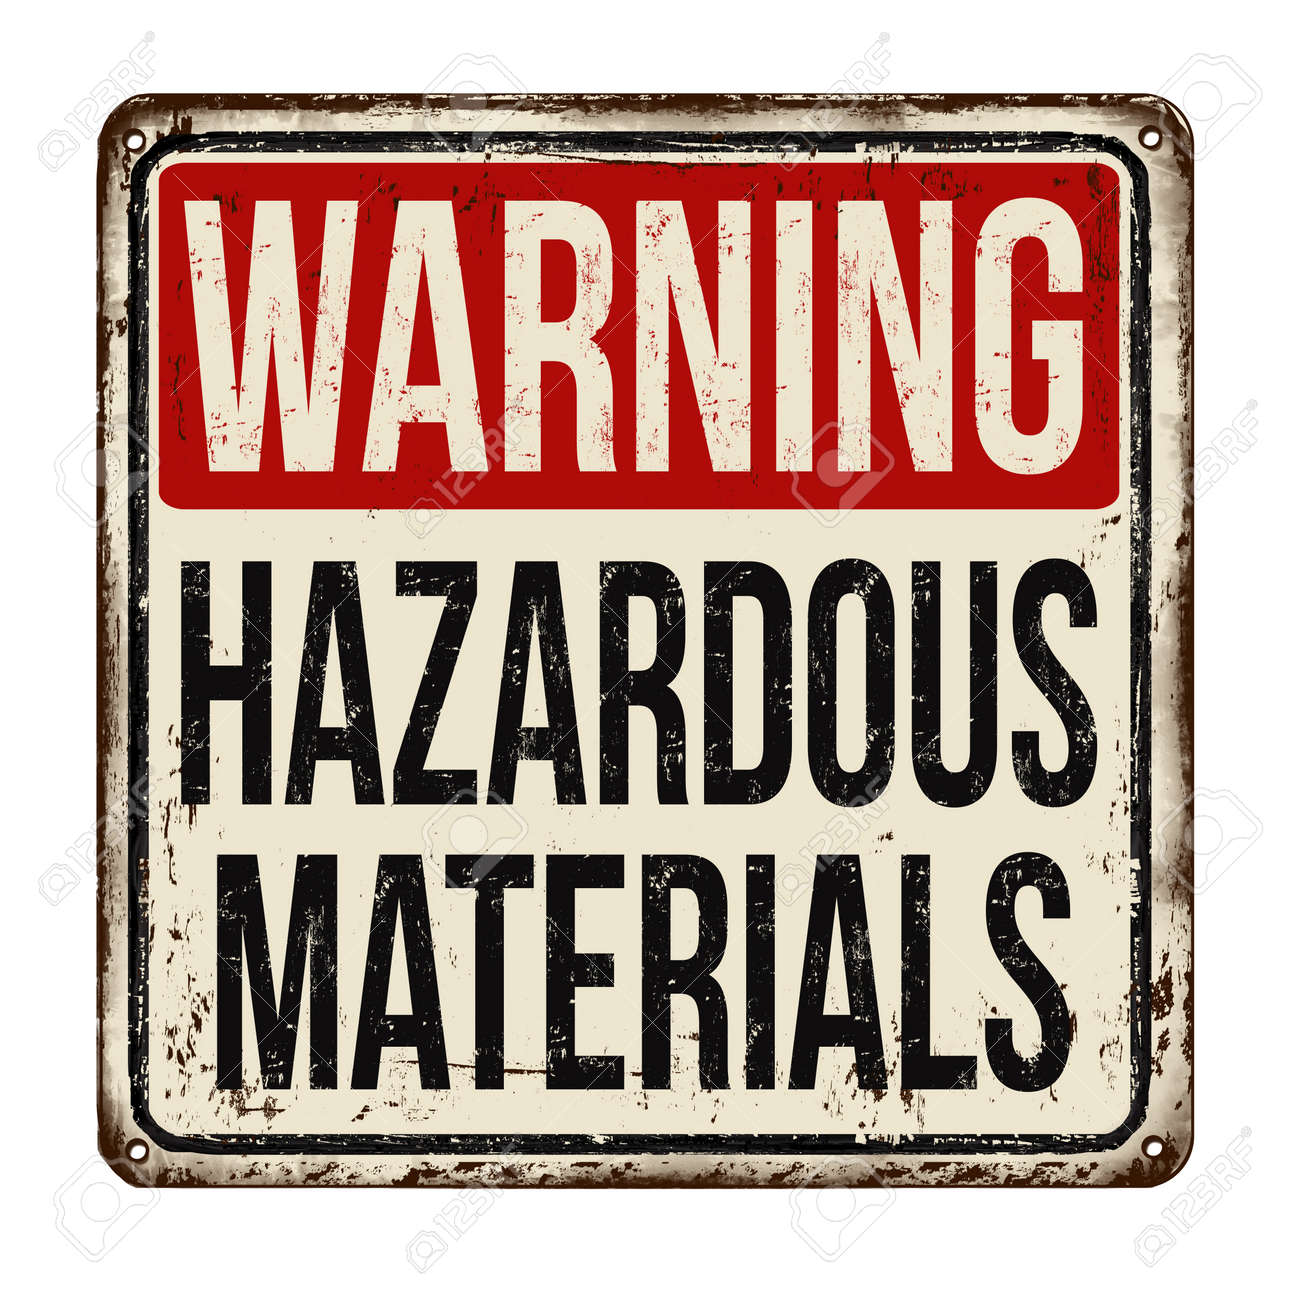 Hazardous materials vintage rusty metal sign on a white background, vector illustration - 91651746